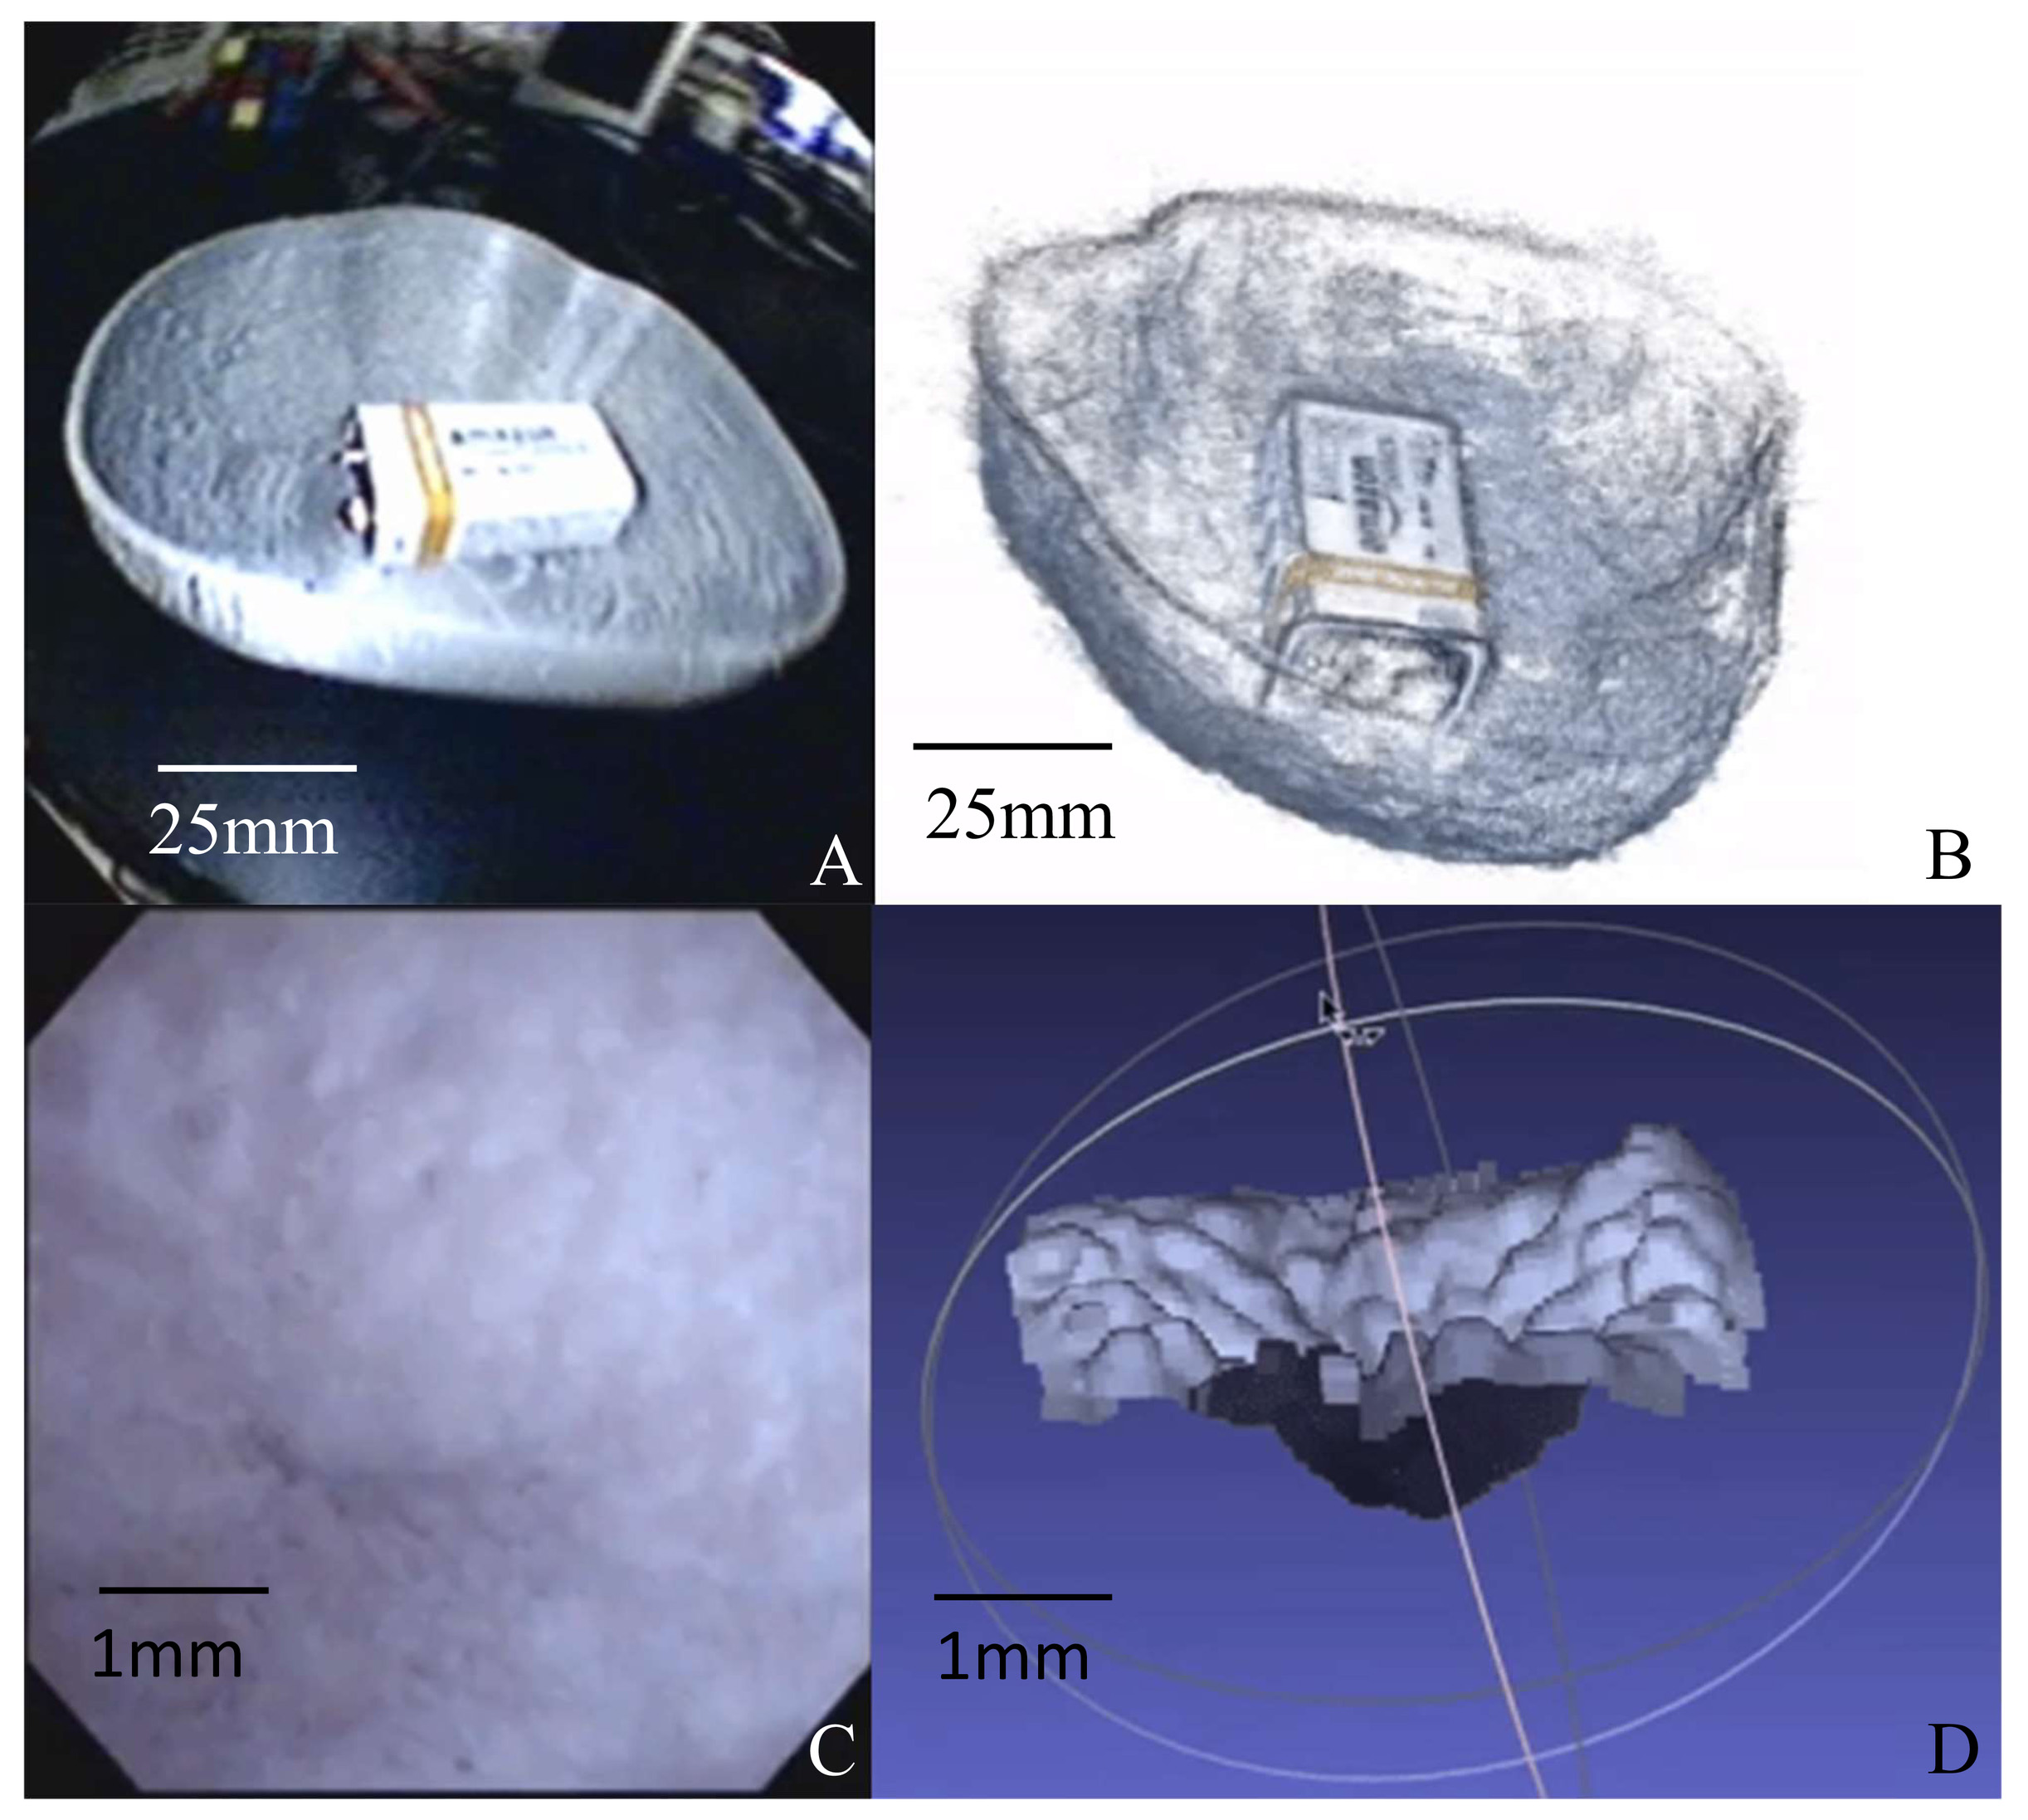 Innovative computer vision approach to 3D bladder model